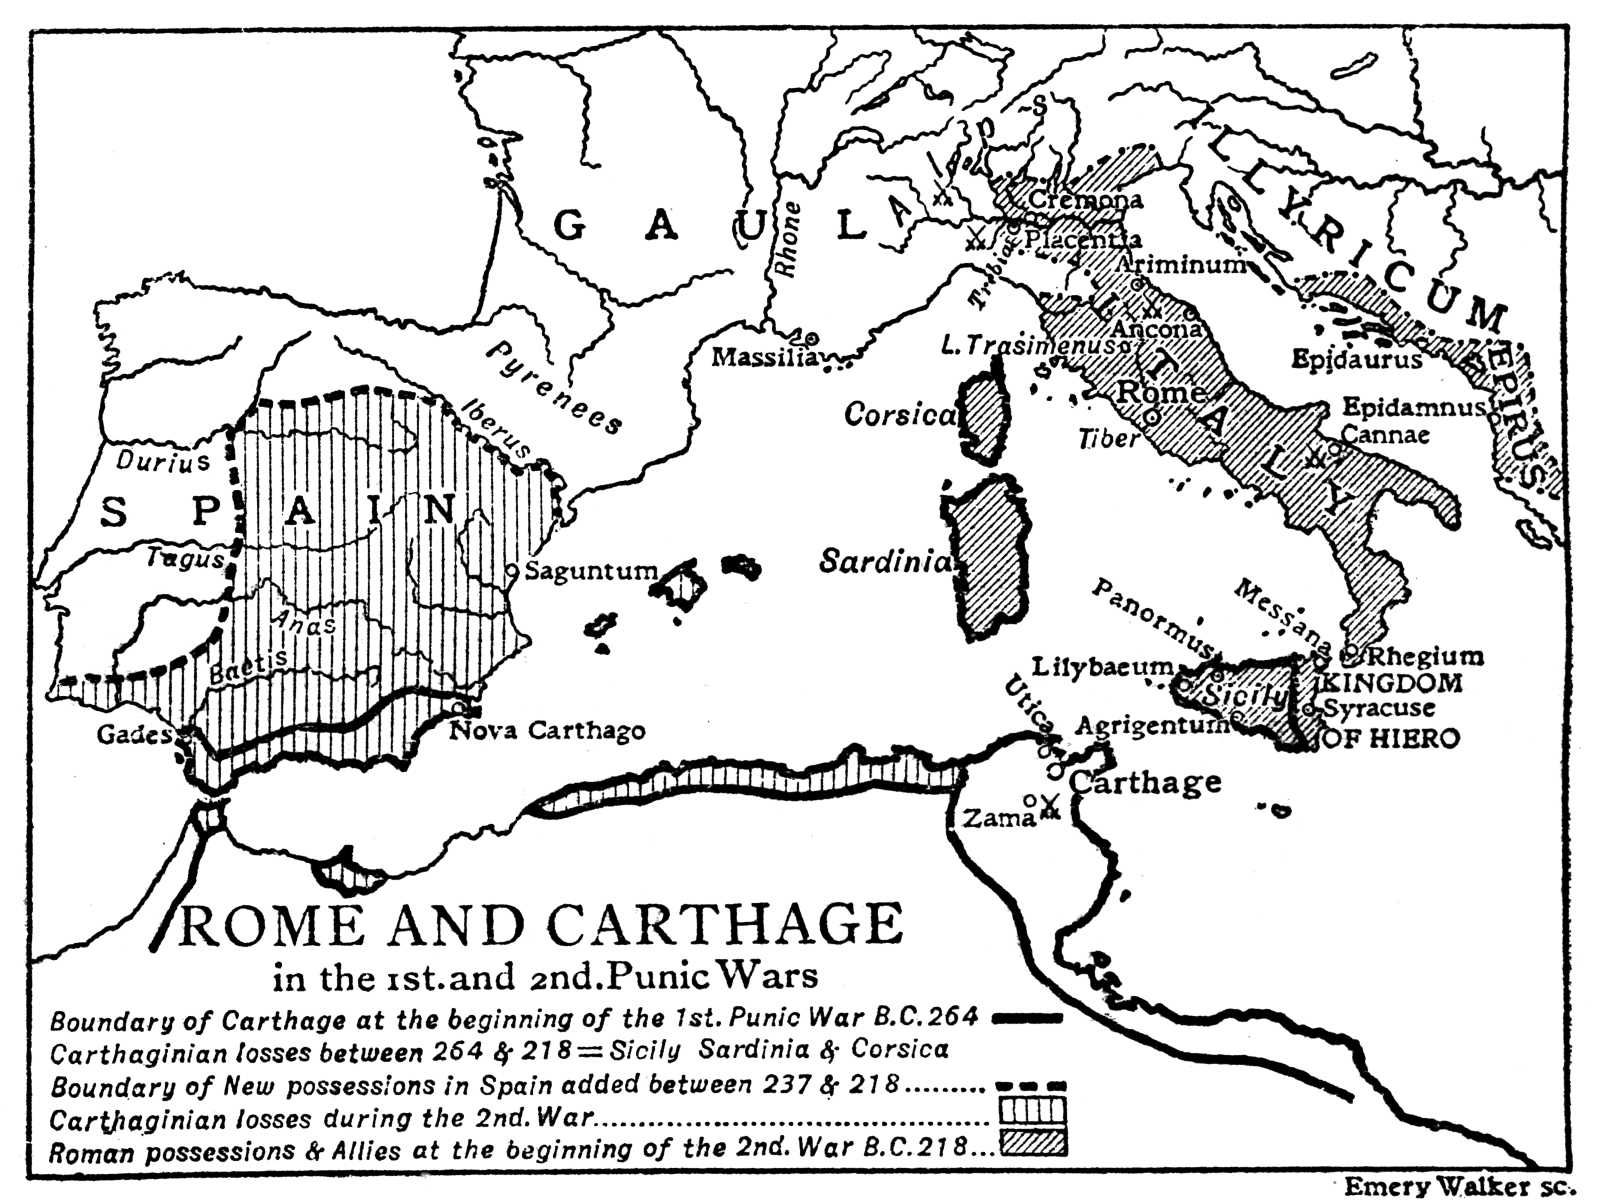 Week5 Map Of Rome And Carthage In The 1st And 2nd Punic